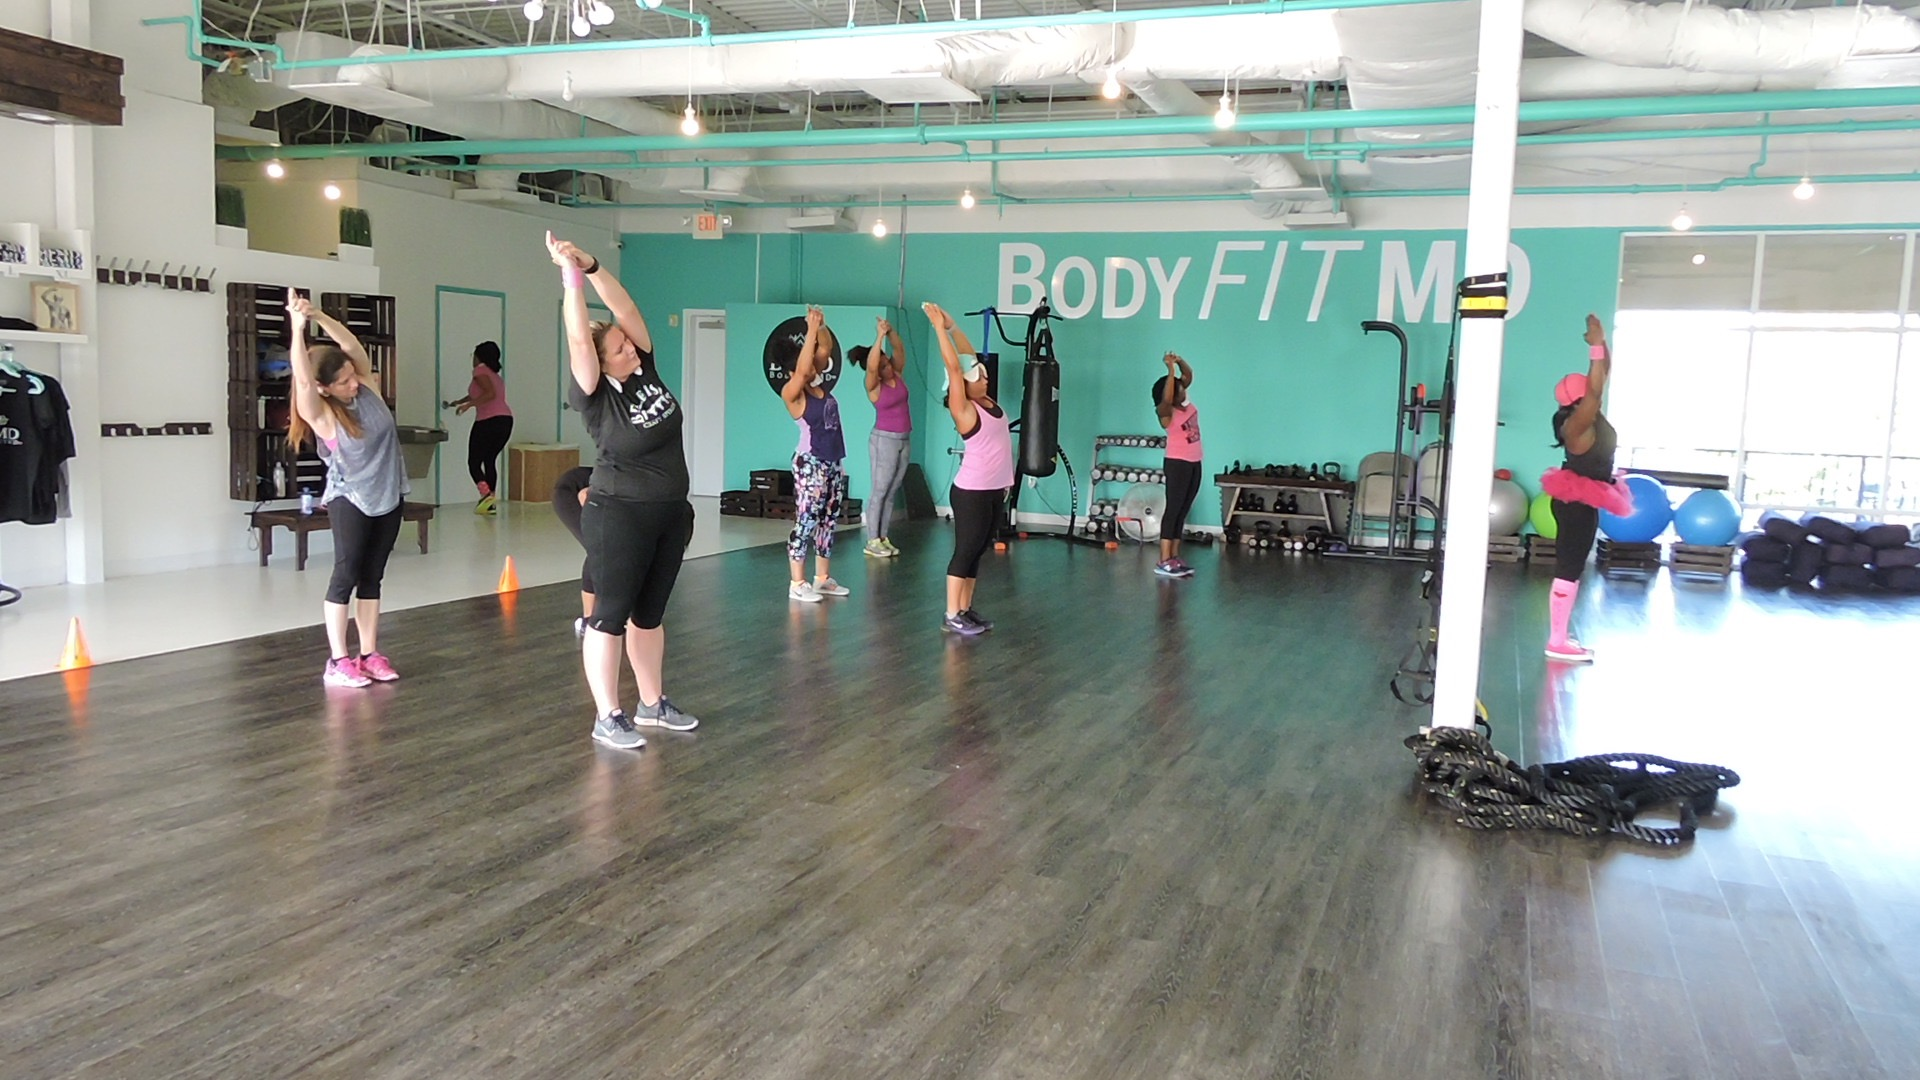 Meet Dr. Michelle Wan of BodyFitMD in Chamblee and ...